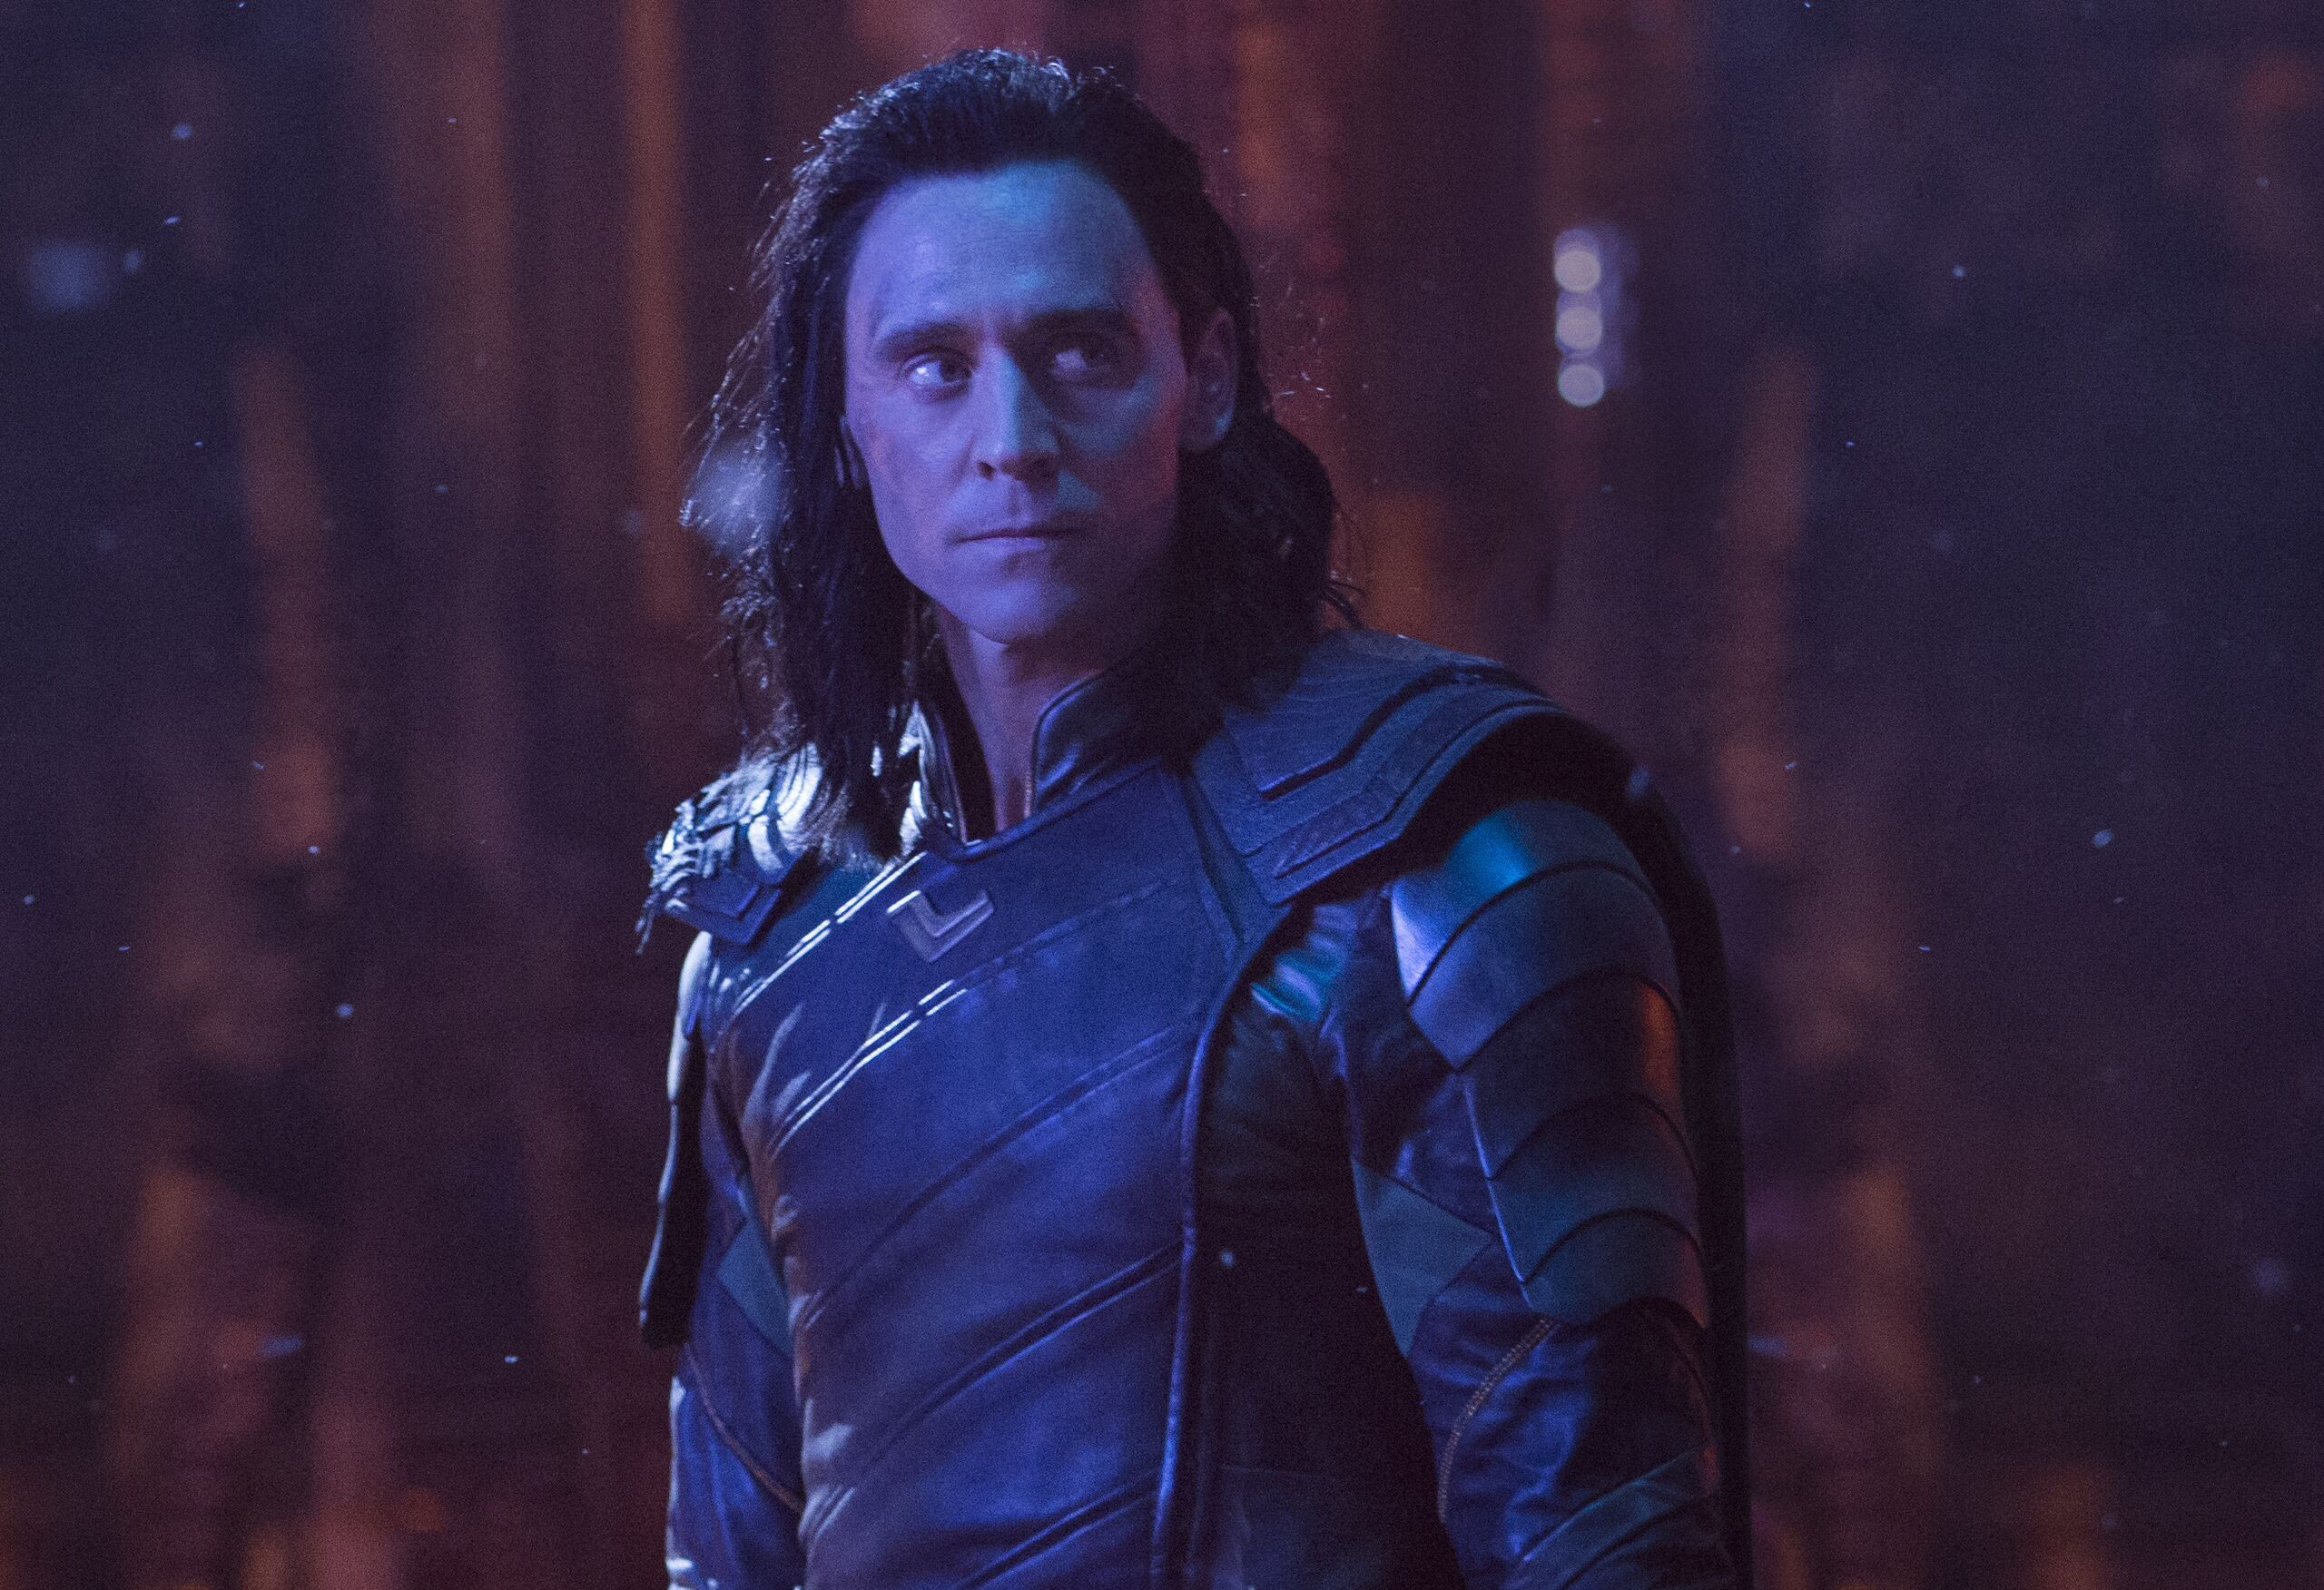 5 time periods we want Loki to visit in his Disney+ series